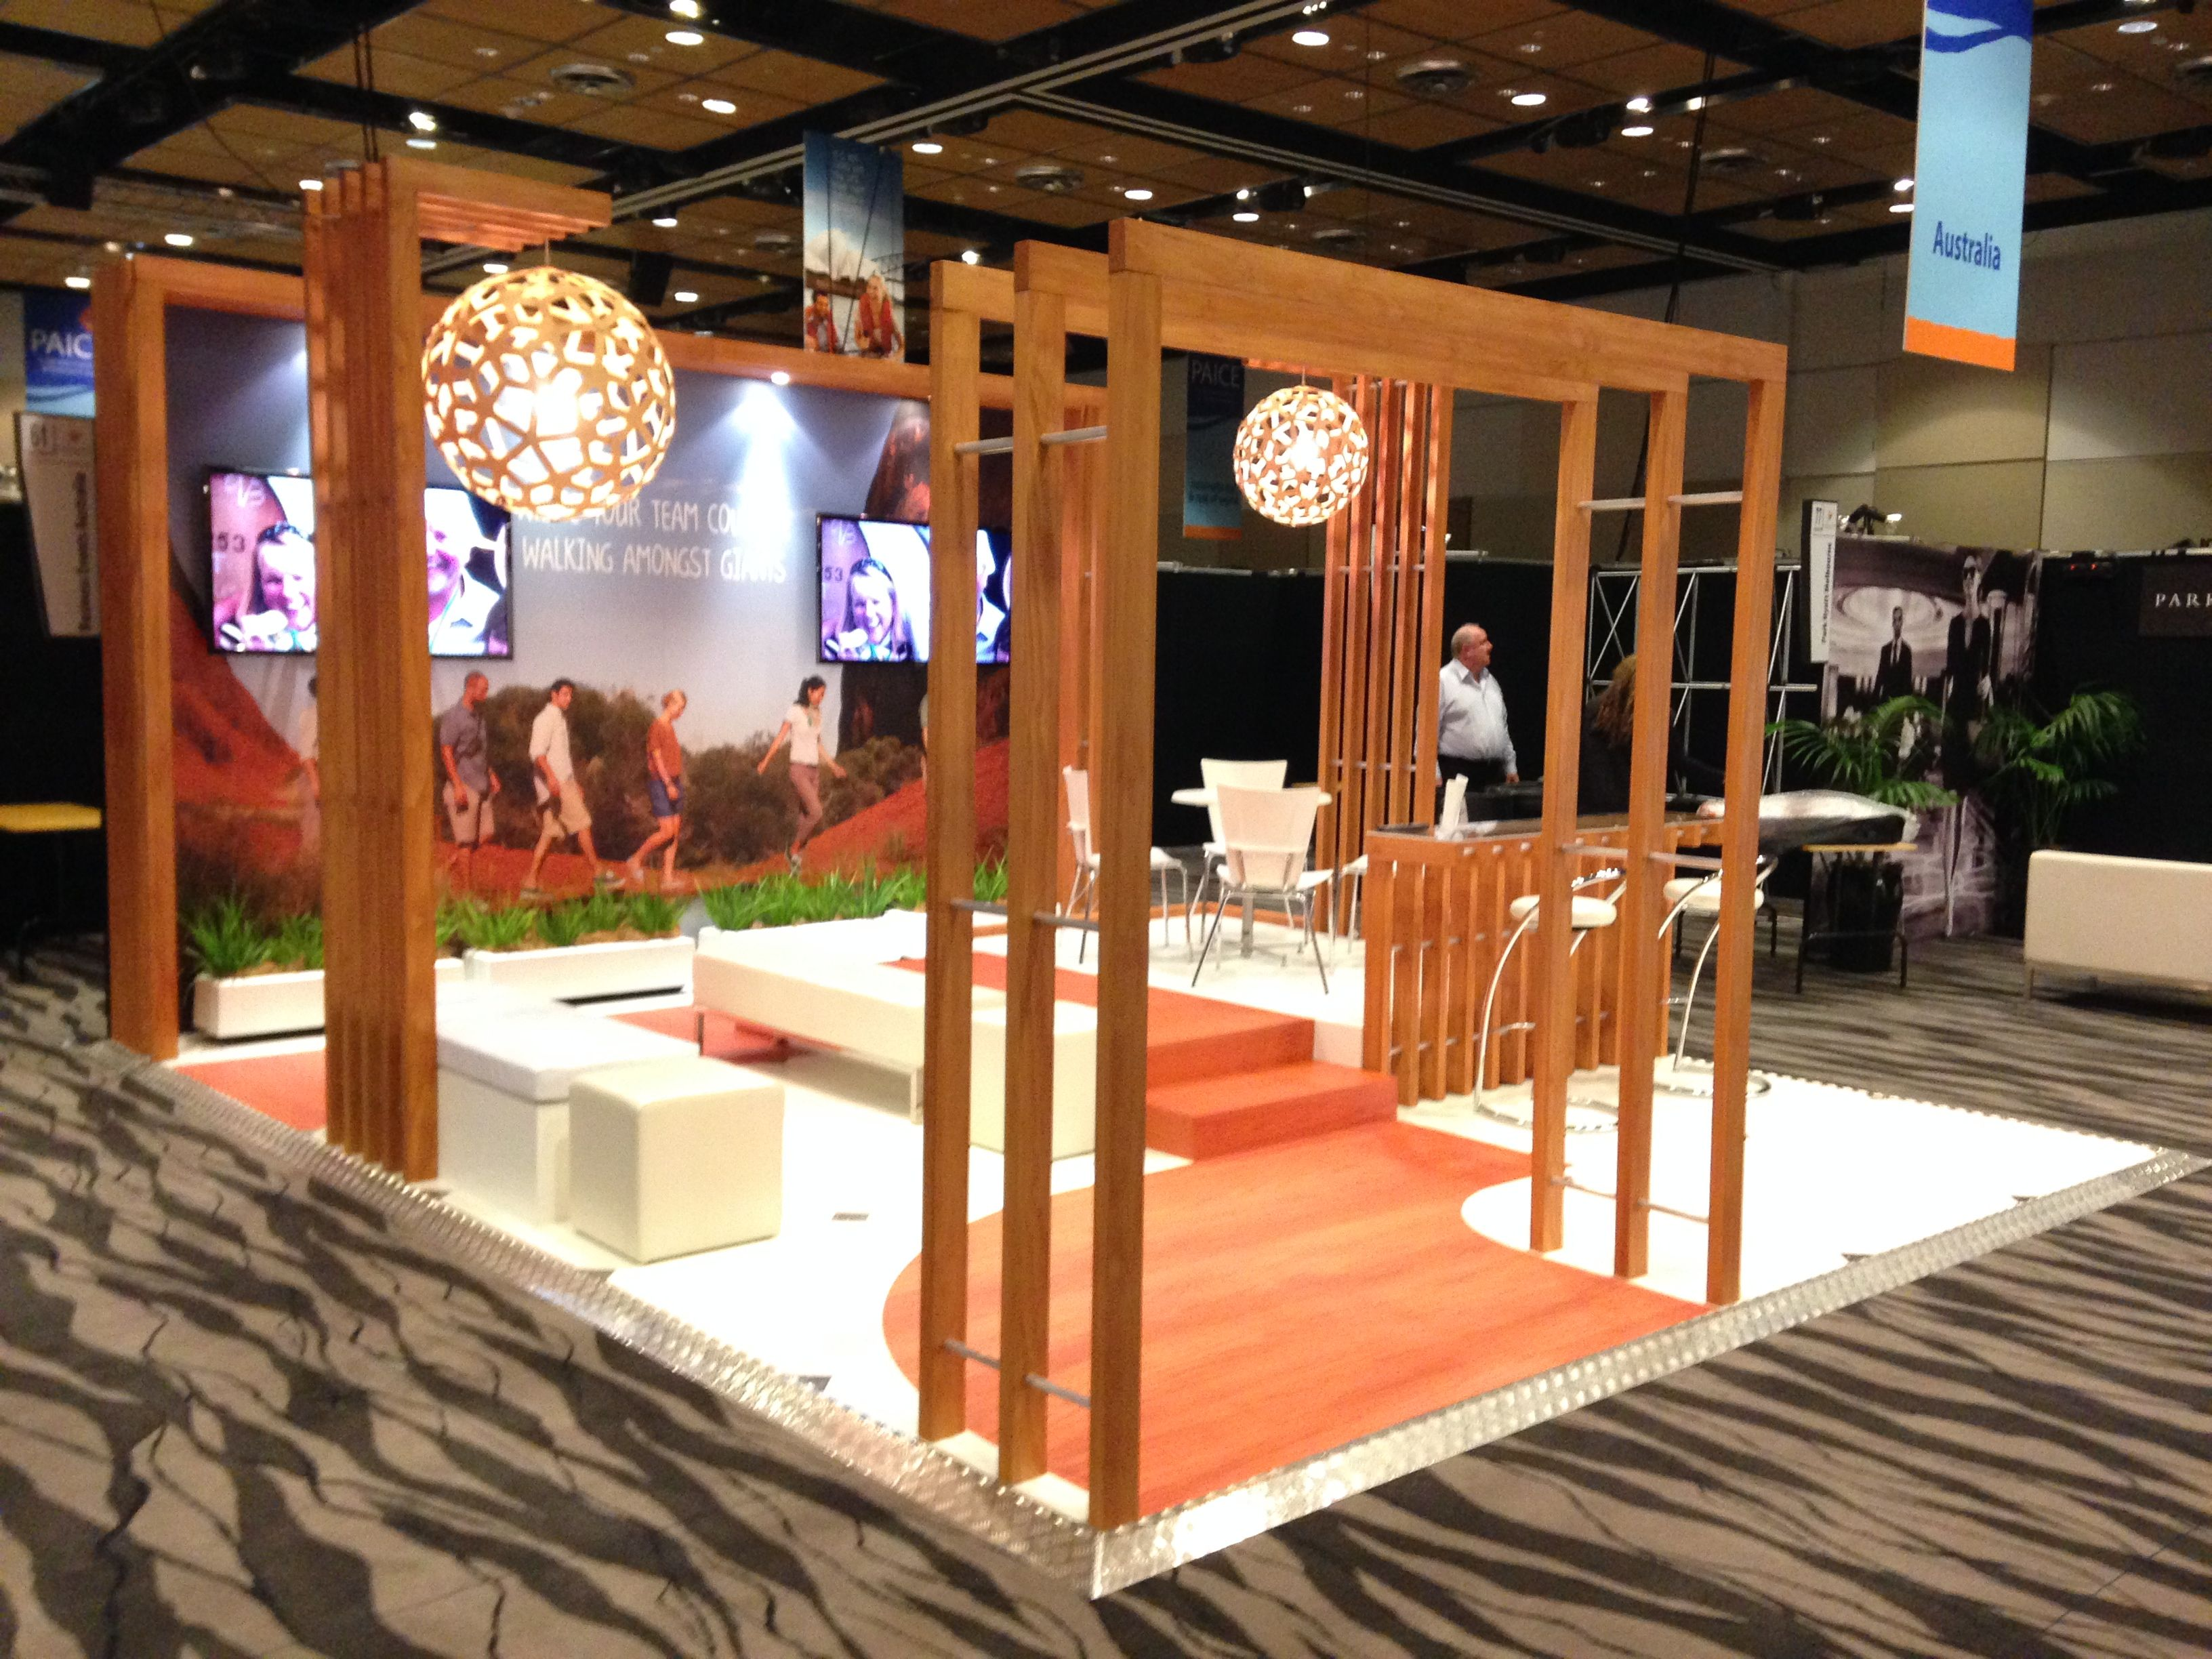 Exhibition Stand Builders New Zealand : Tourism australia stand designed by peek exhibition for